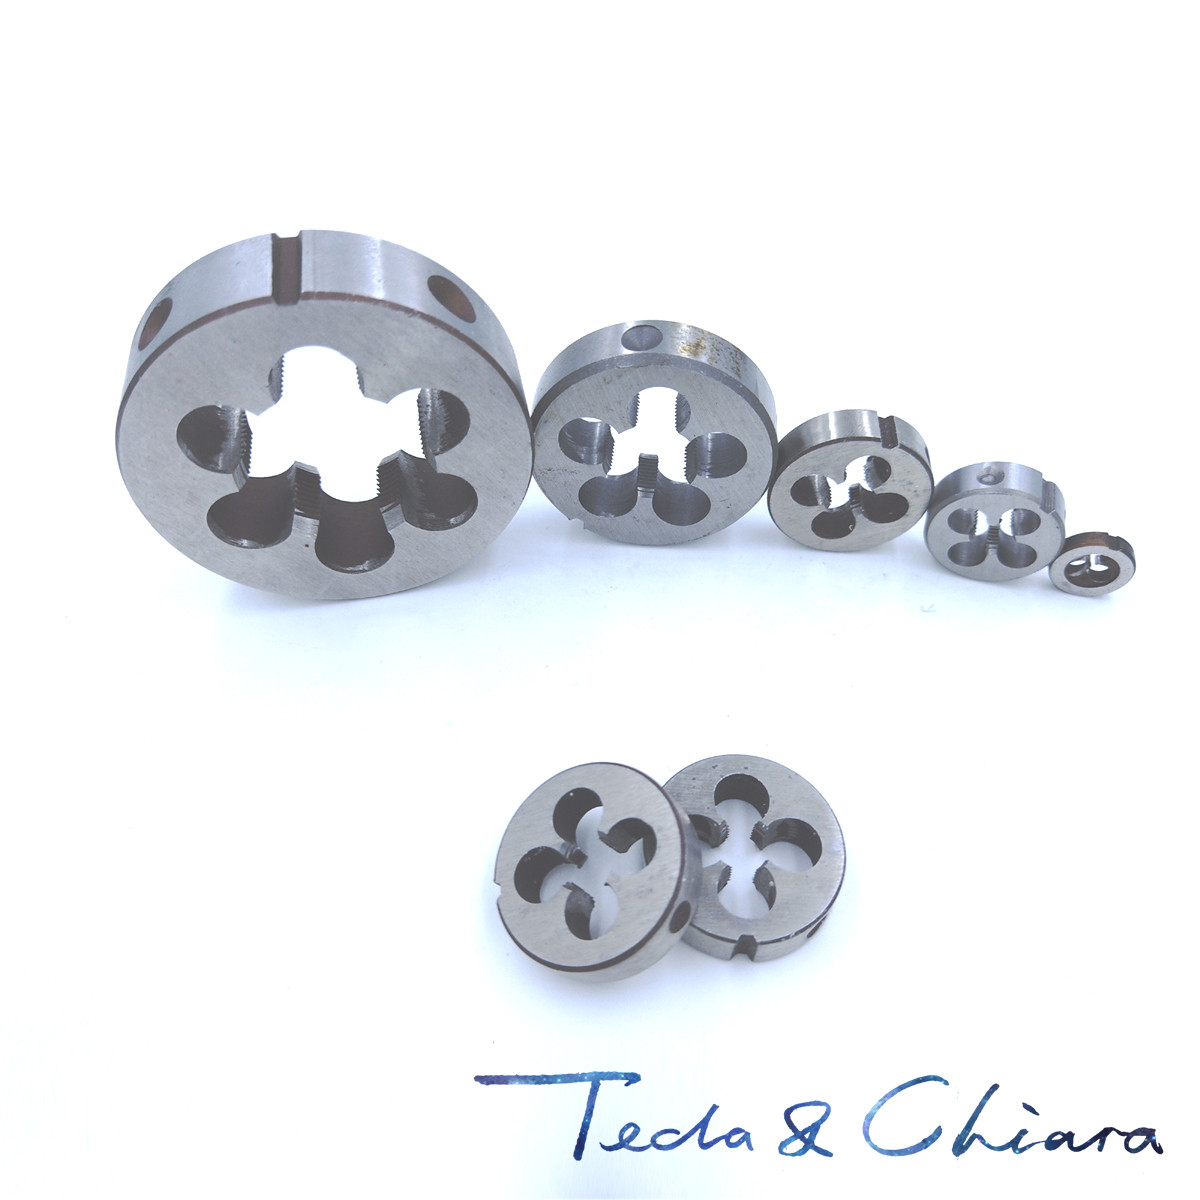 1Pc M24 X 1mm 1.25mm 1.5mm 1.75mm 2mm 3mm Metric Right Hand Die Threading Tools For Mold Machining * 1 1.25 1.5 1.75 2 3